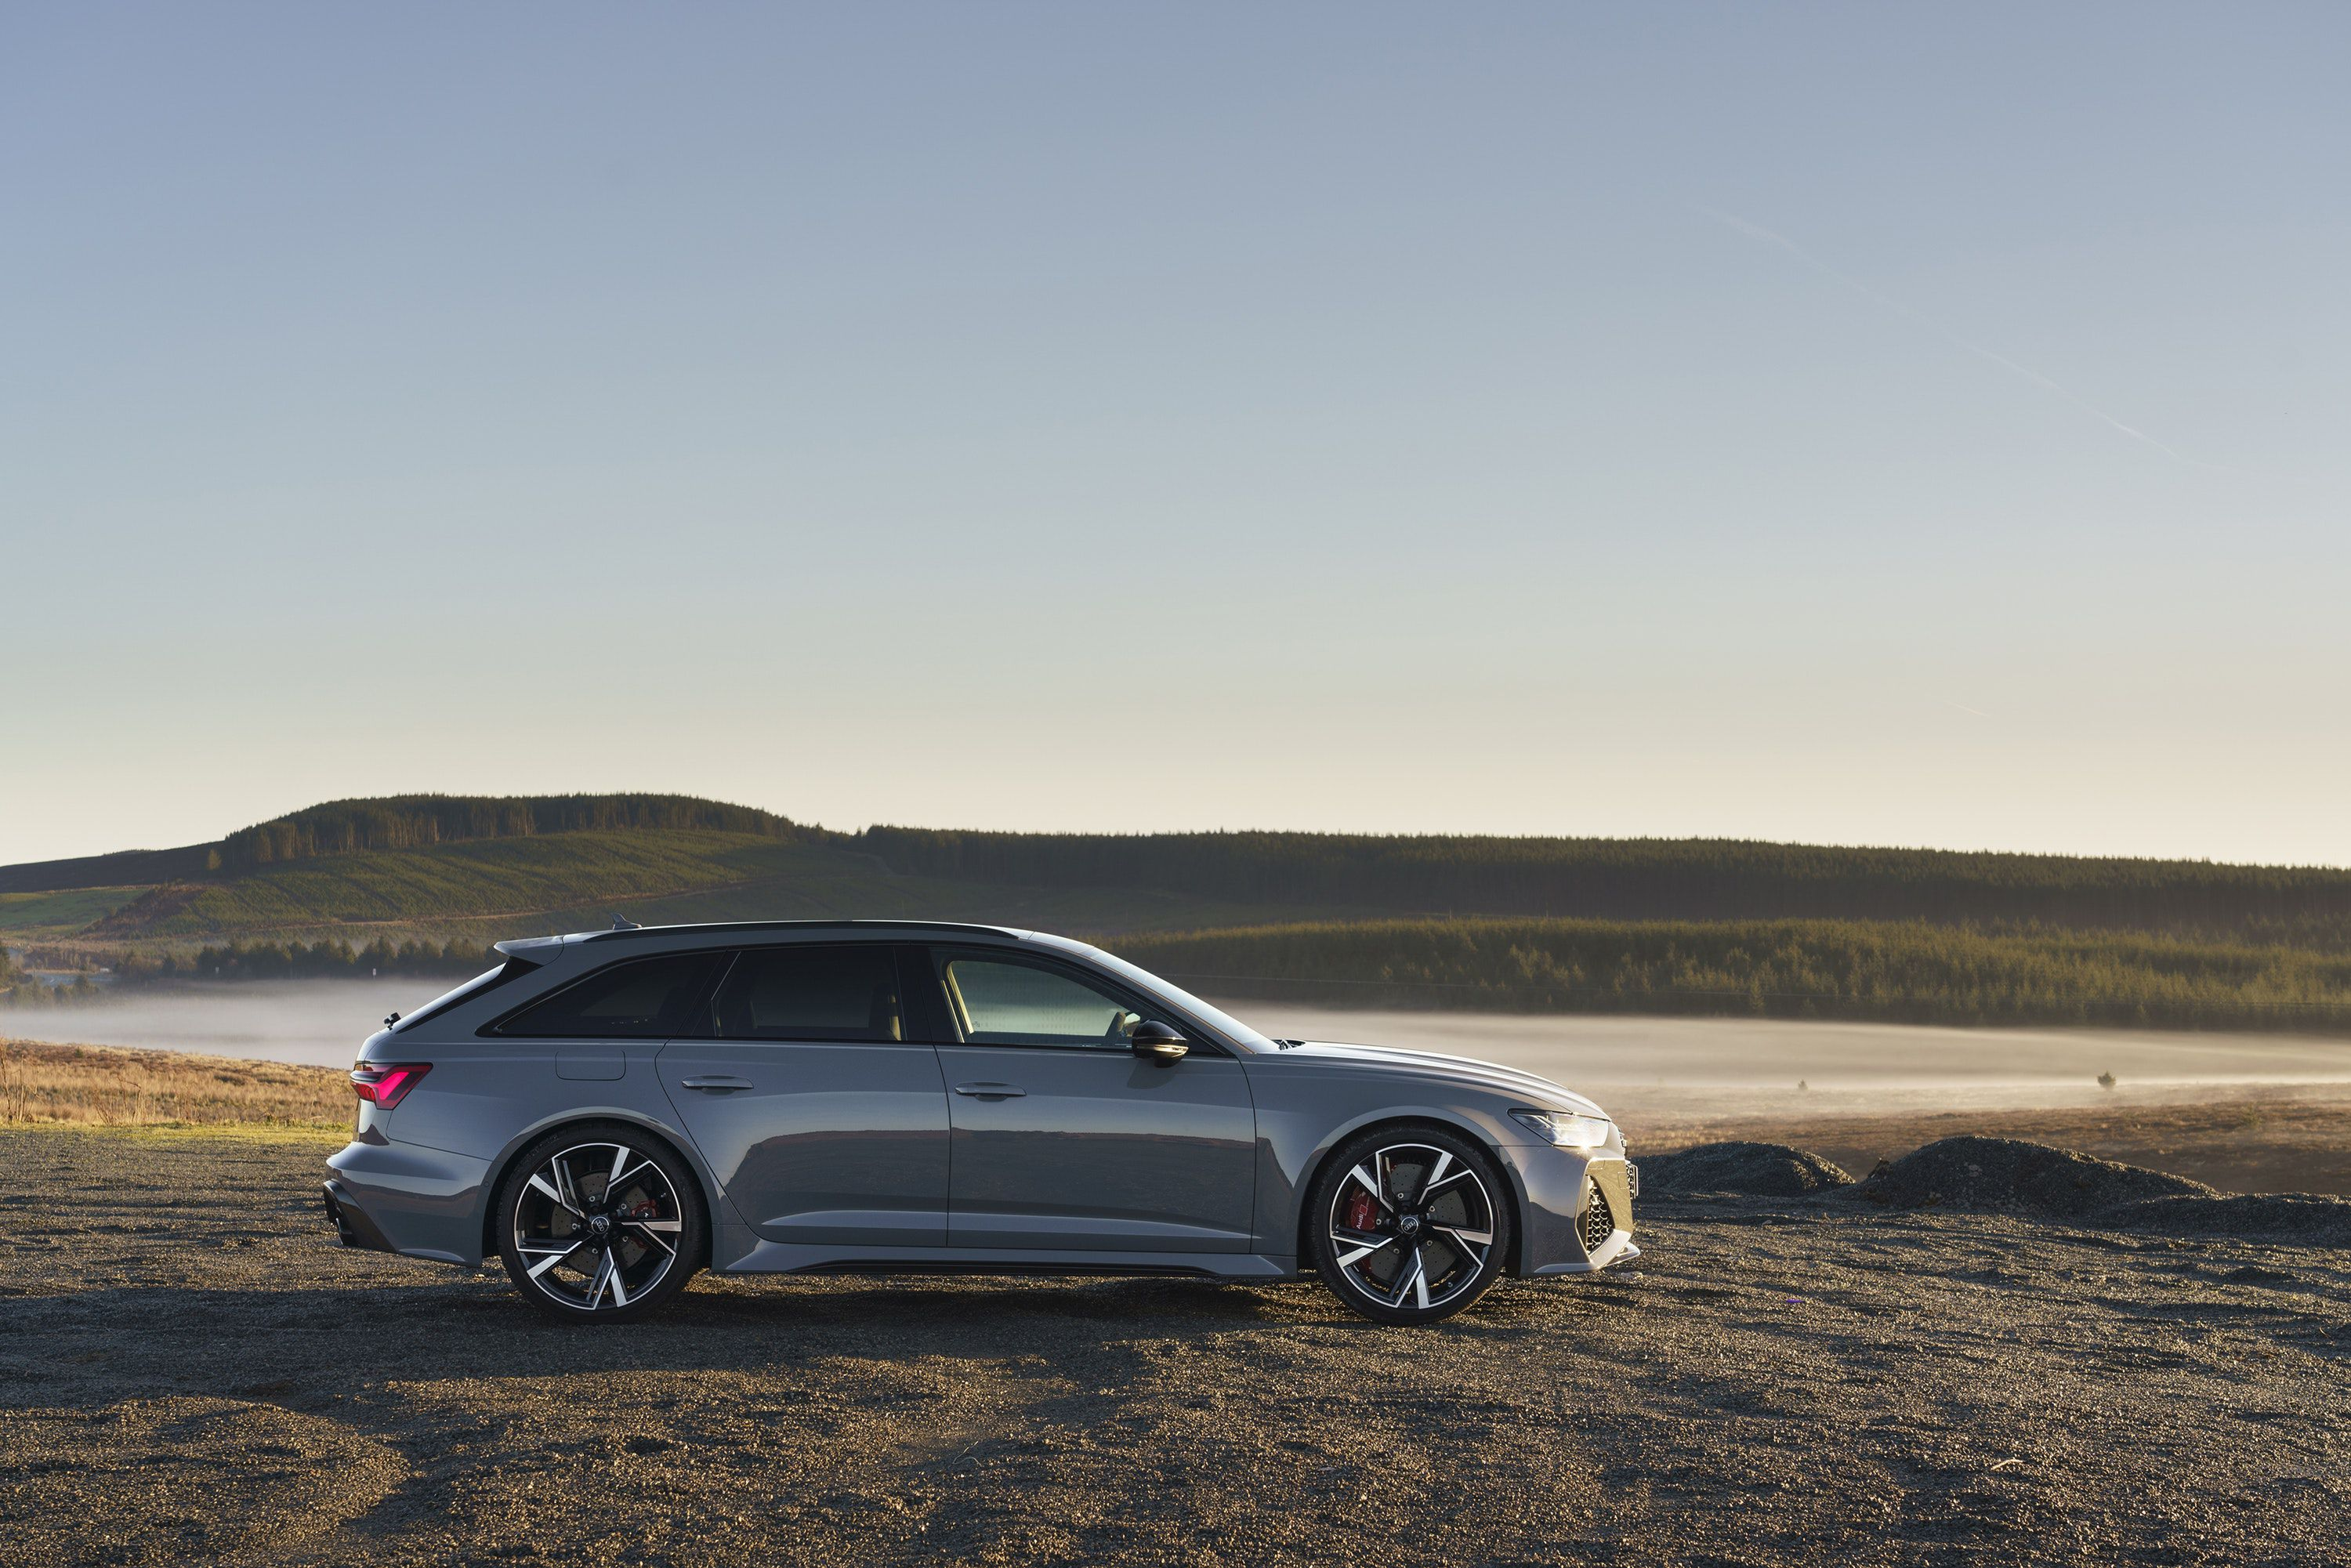 Side view of the Audi RS6 Avant for sale